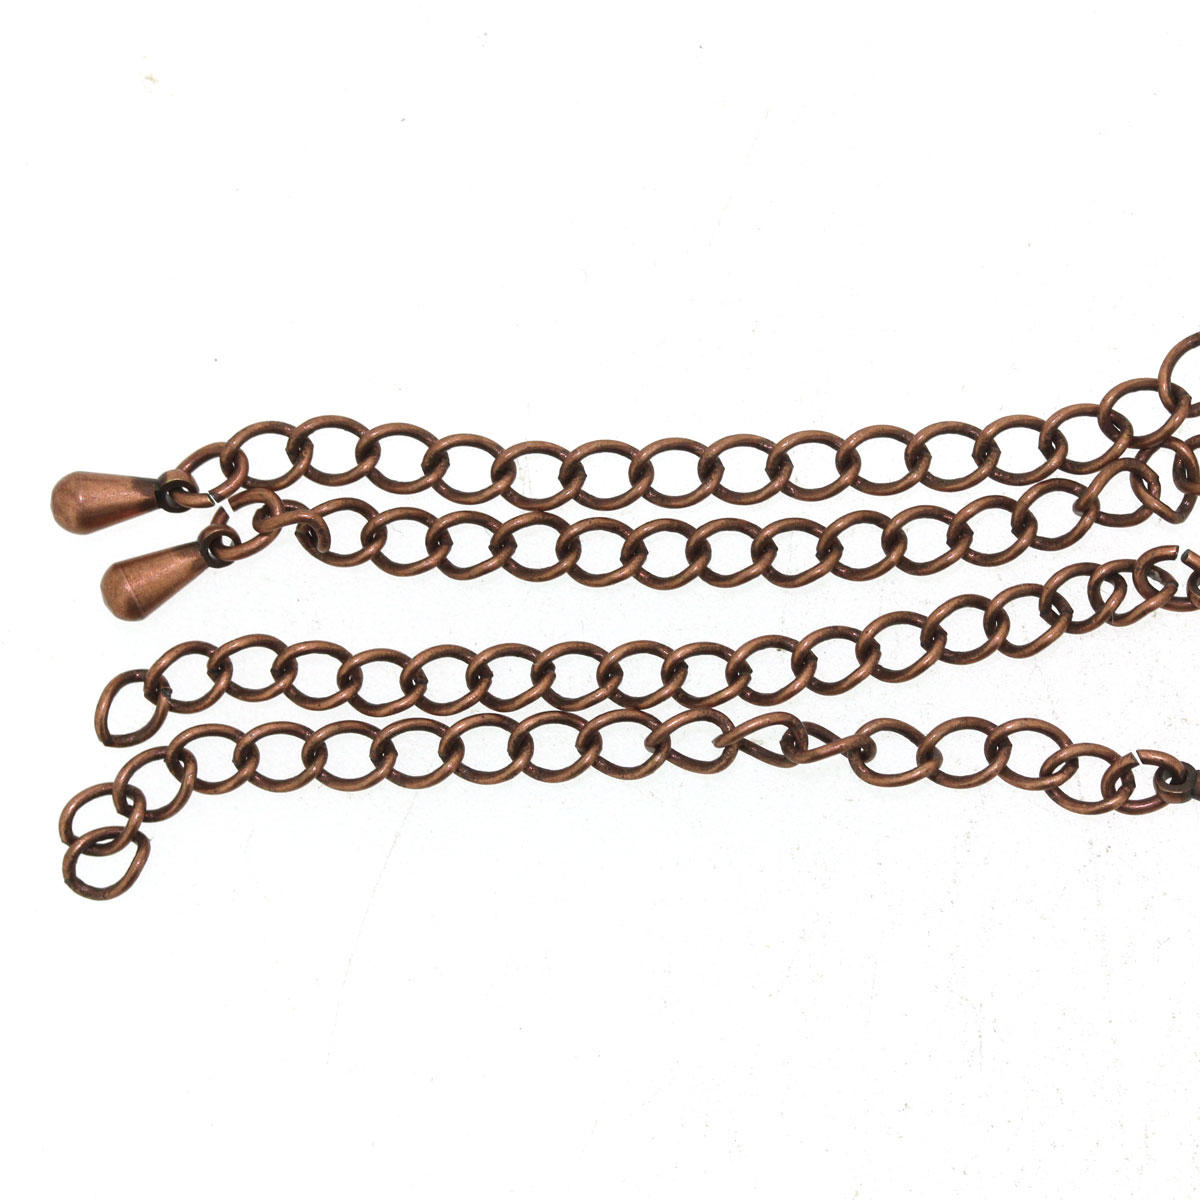 Antique Copper Extender Chain Finding